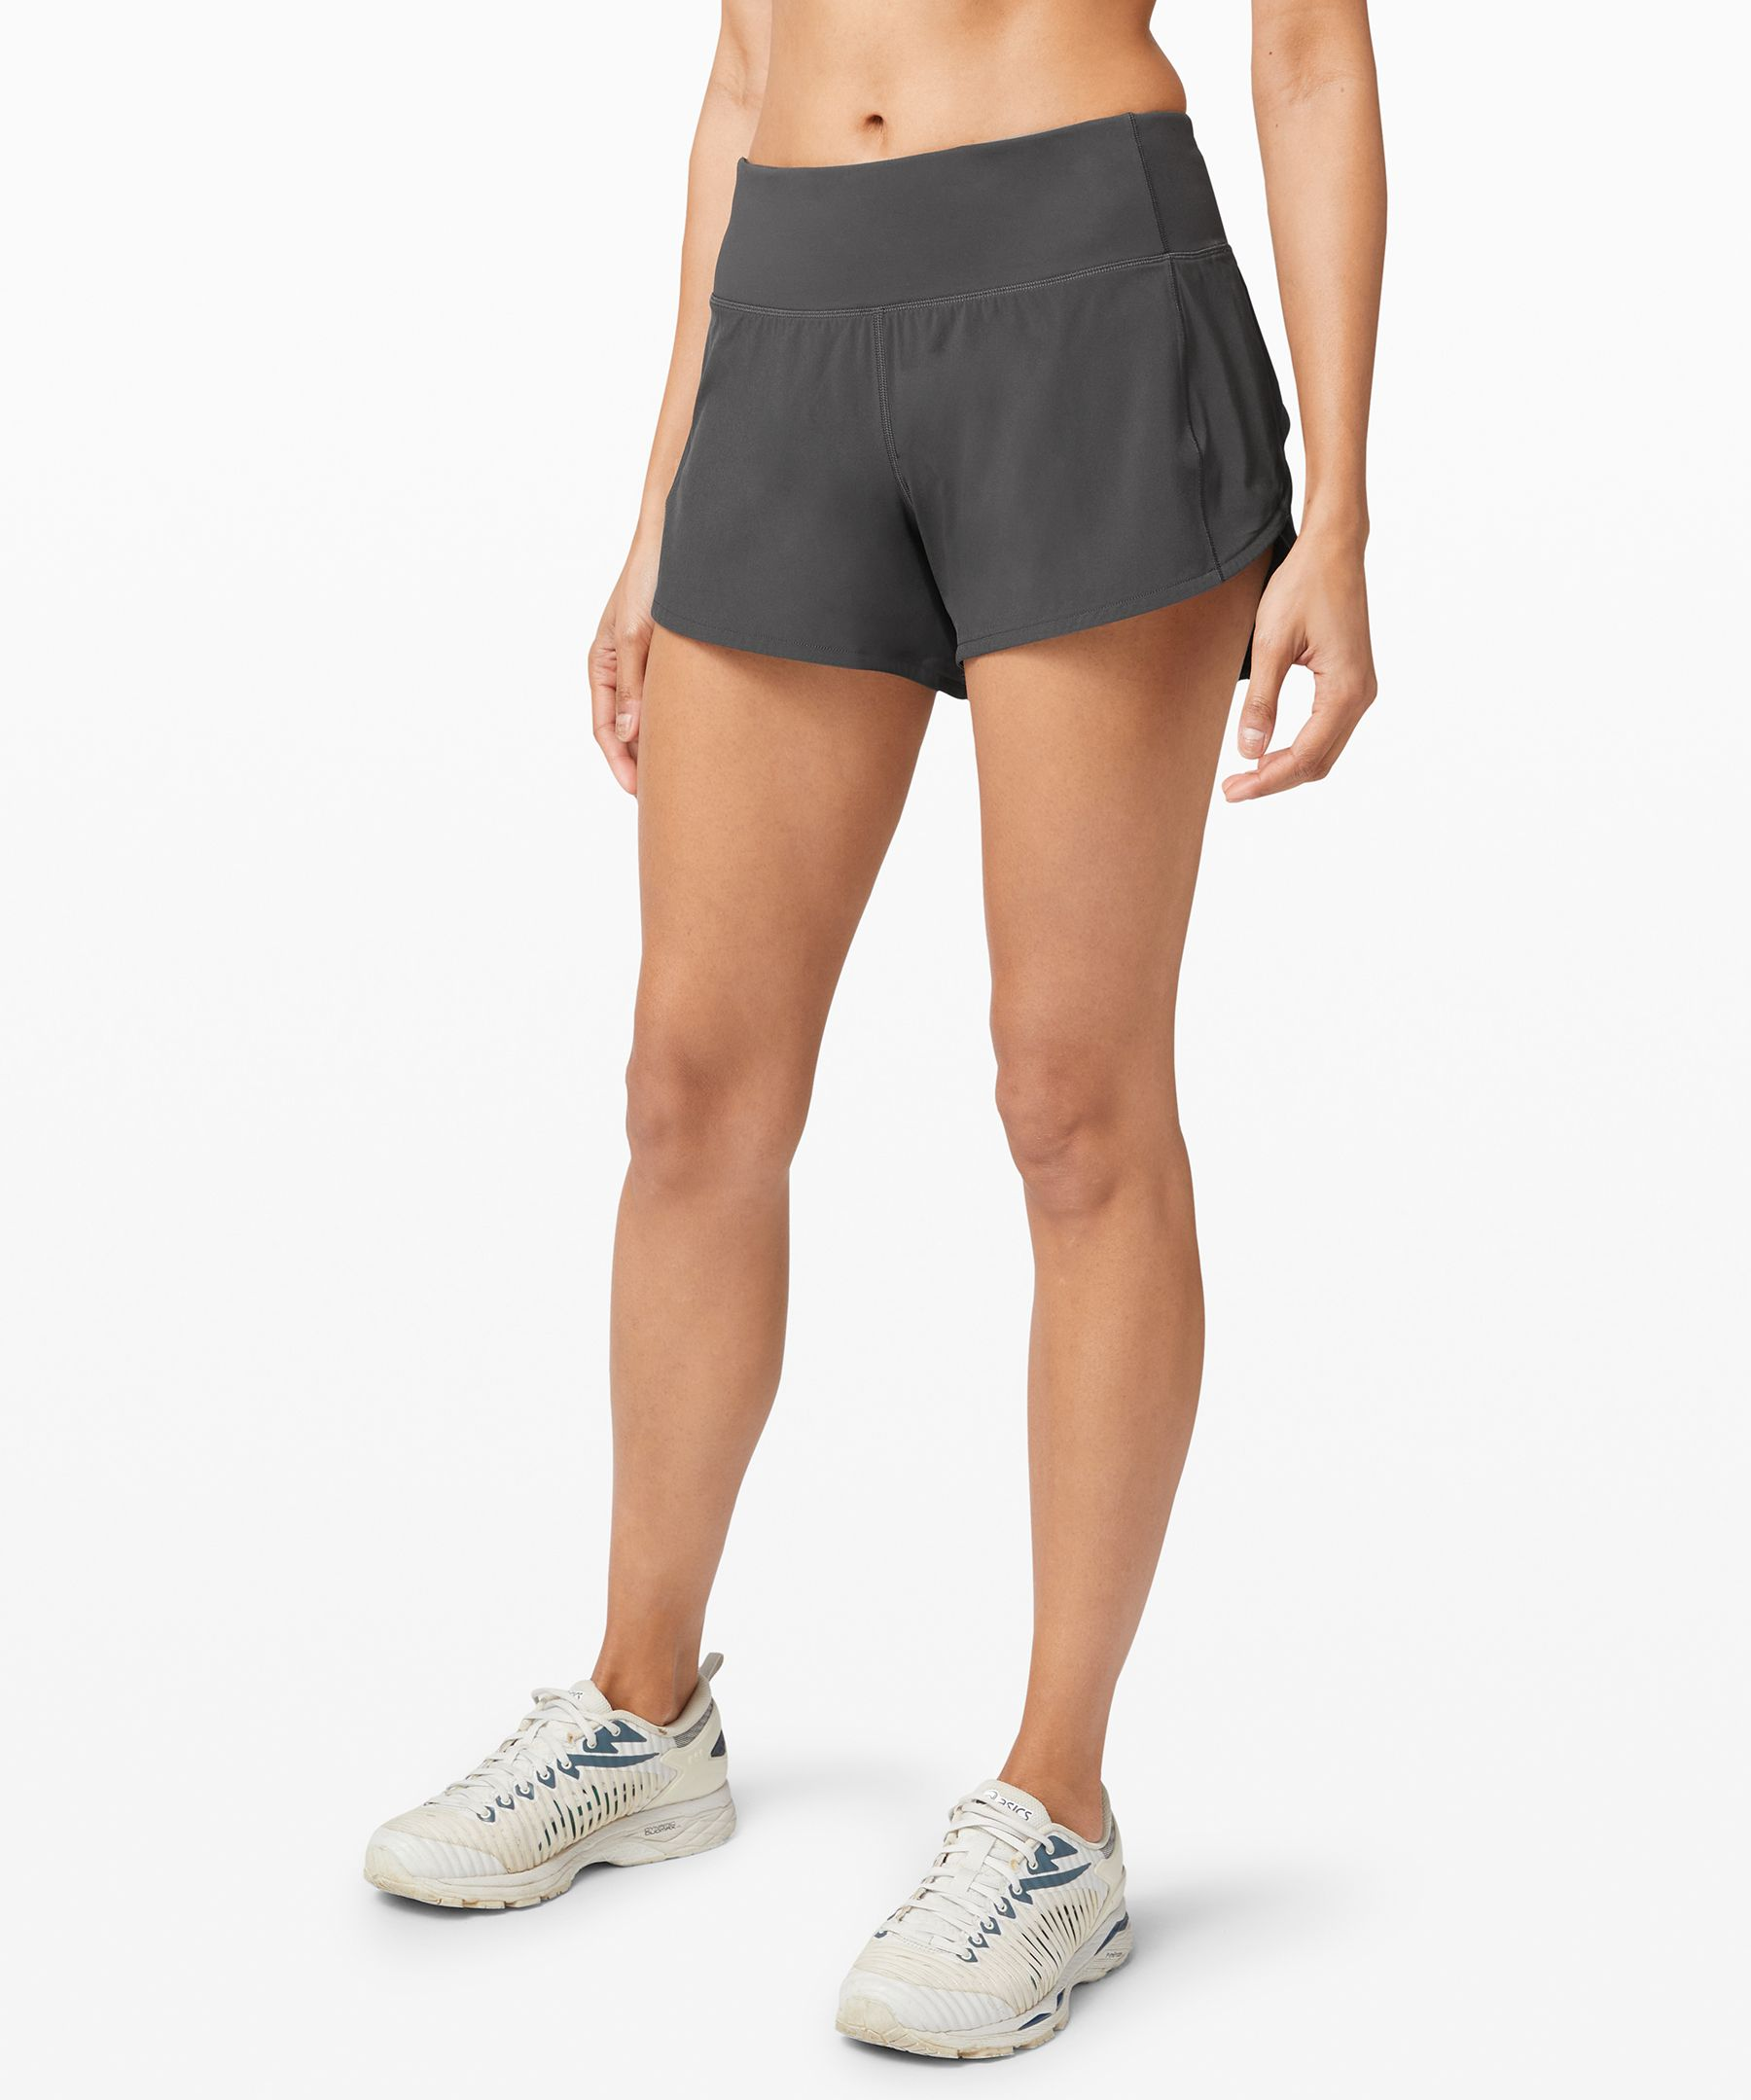 Speed Up Short Long 4 Updated Fit Women S Shorts Lululemon